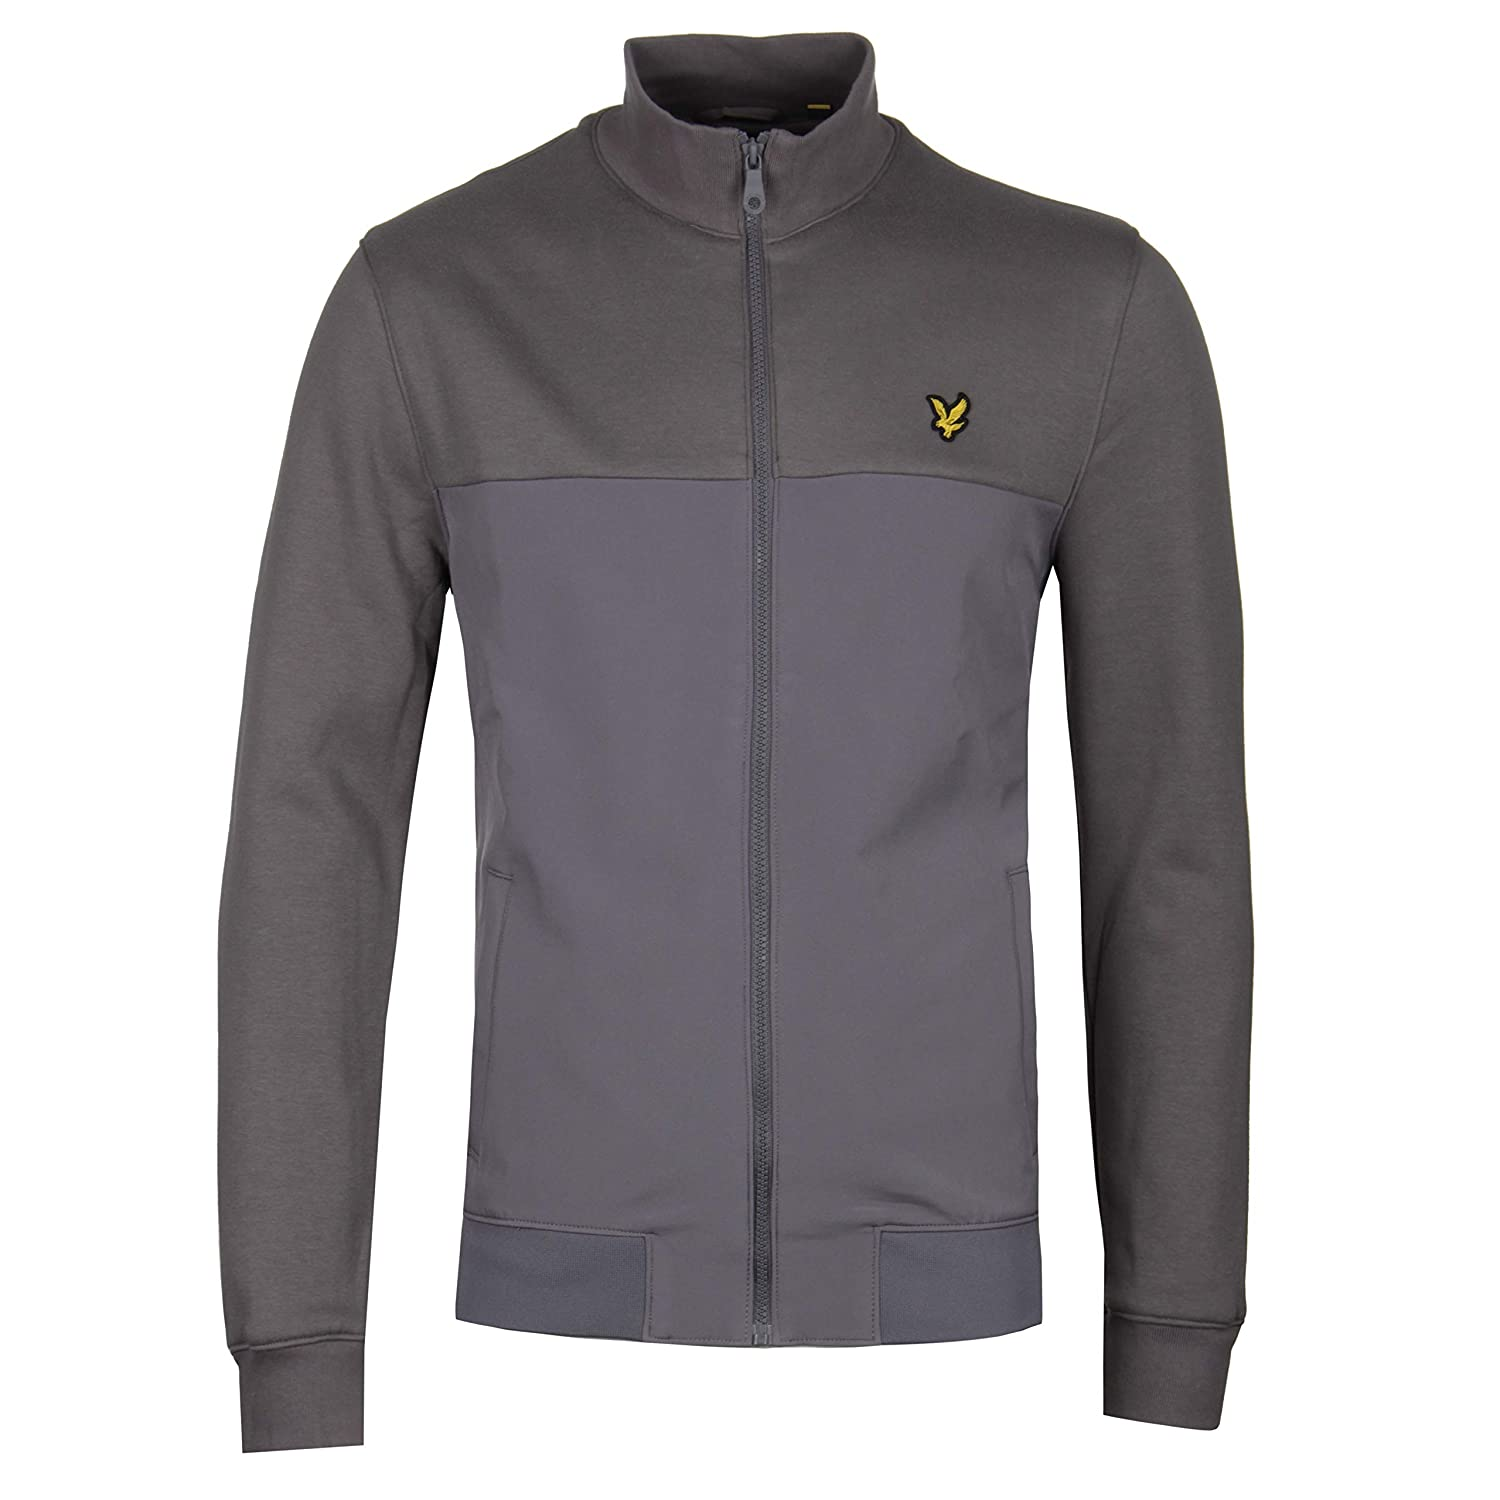 Lyle & Scott Soft Shell Jersey Trichterhals Urban Grau Sweat